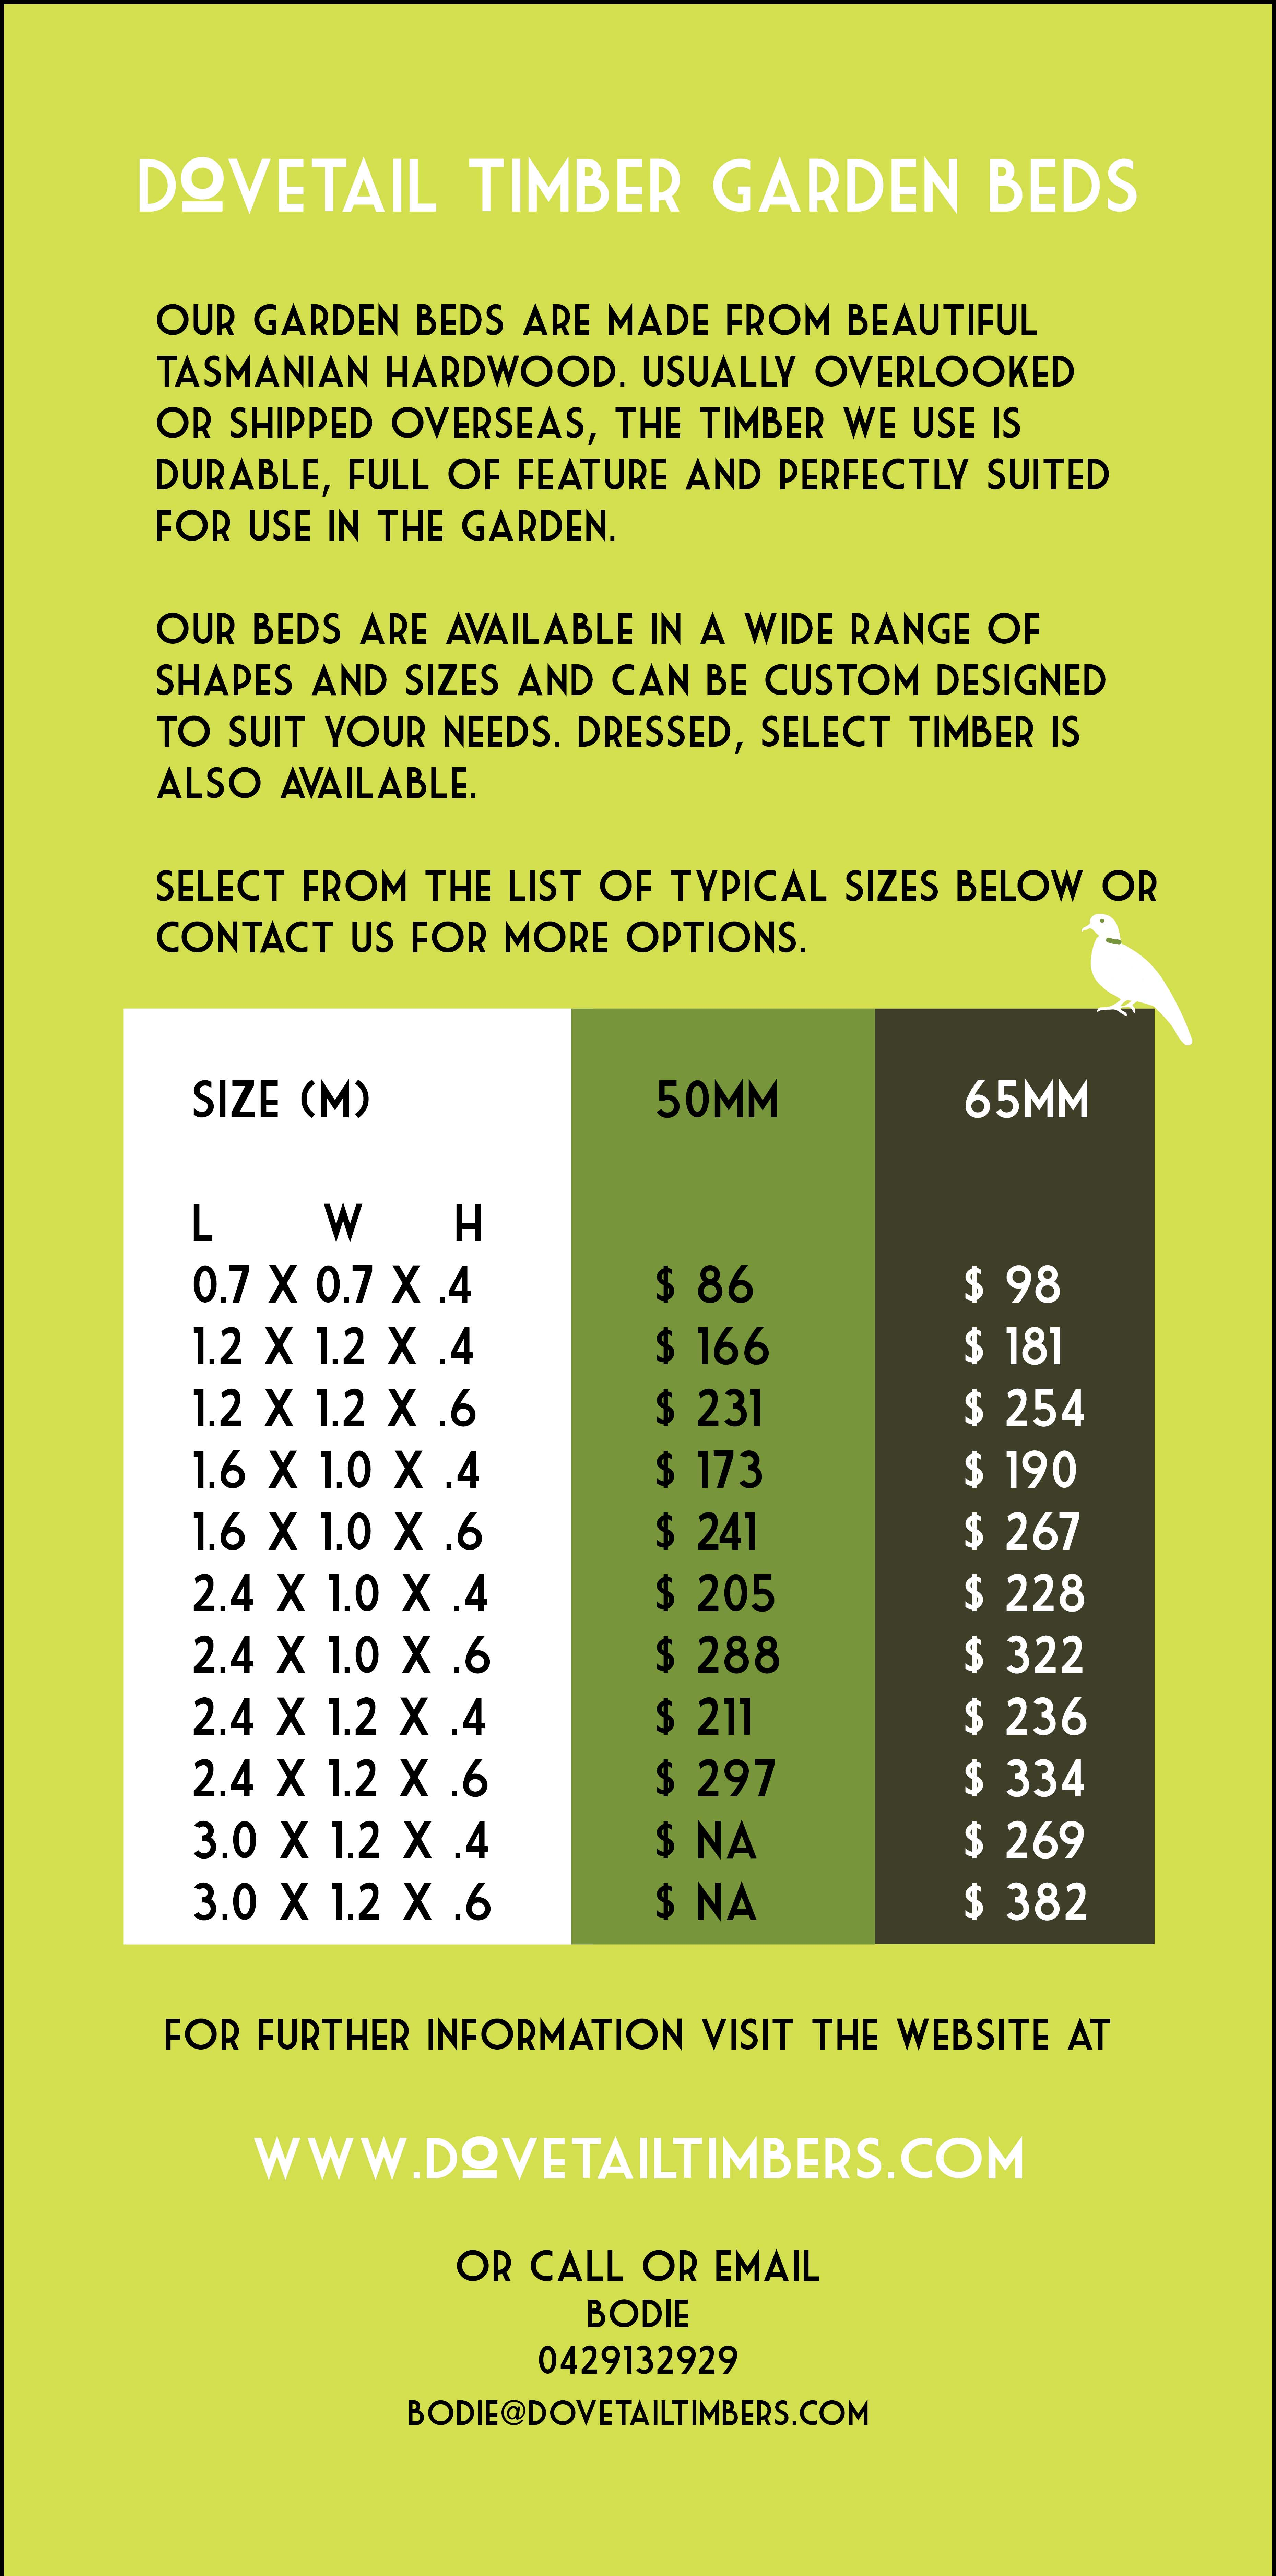 dtt gb price list 2012e jpg 3720 7511 garden vegetable